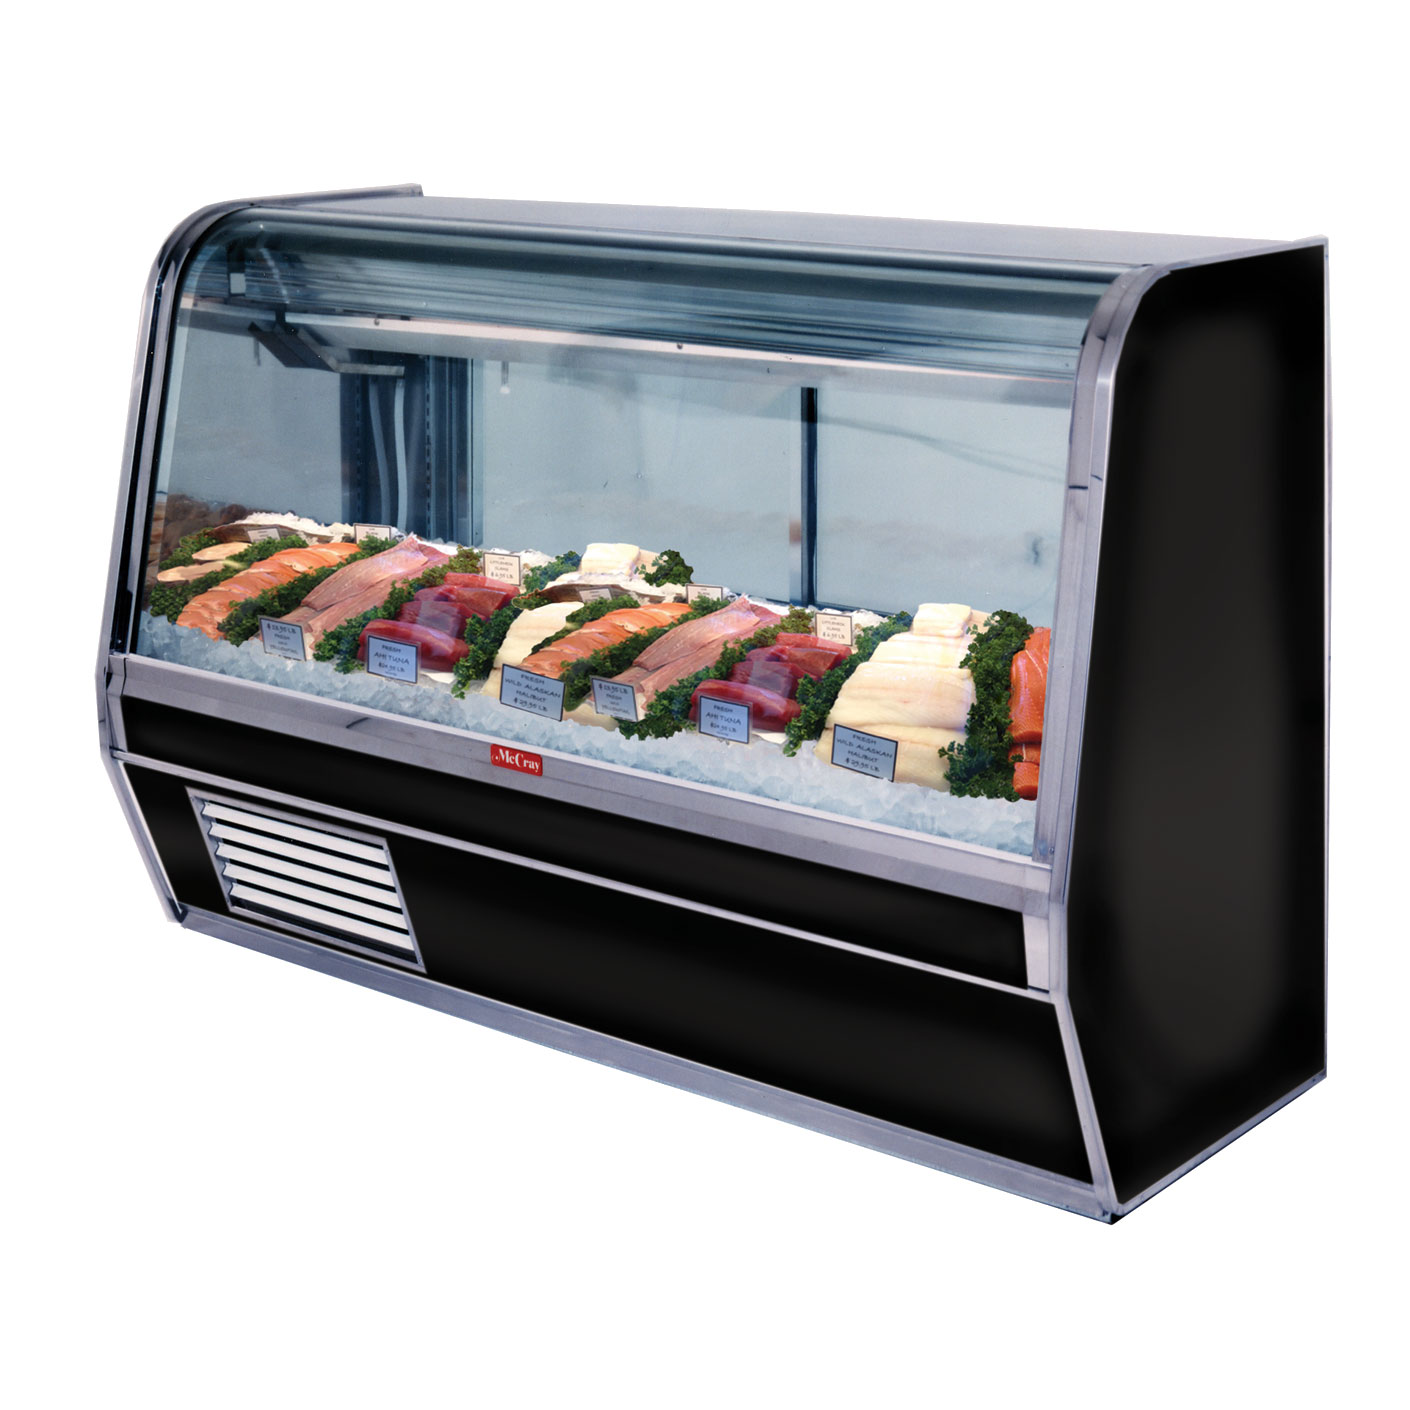 Howard-McCray SC-CFS32E-8C-BE-LED display case, deli seafood / poultry